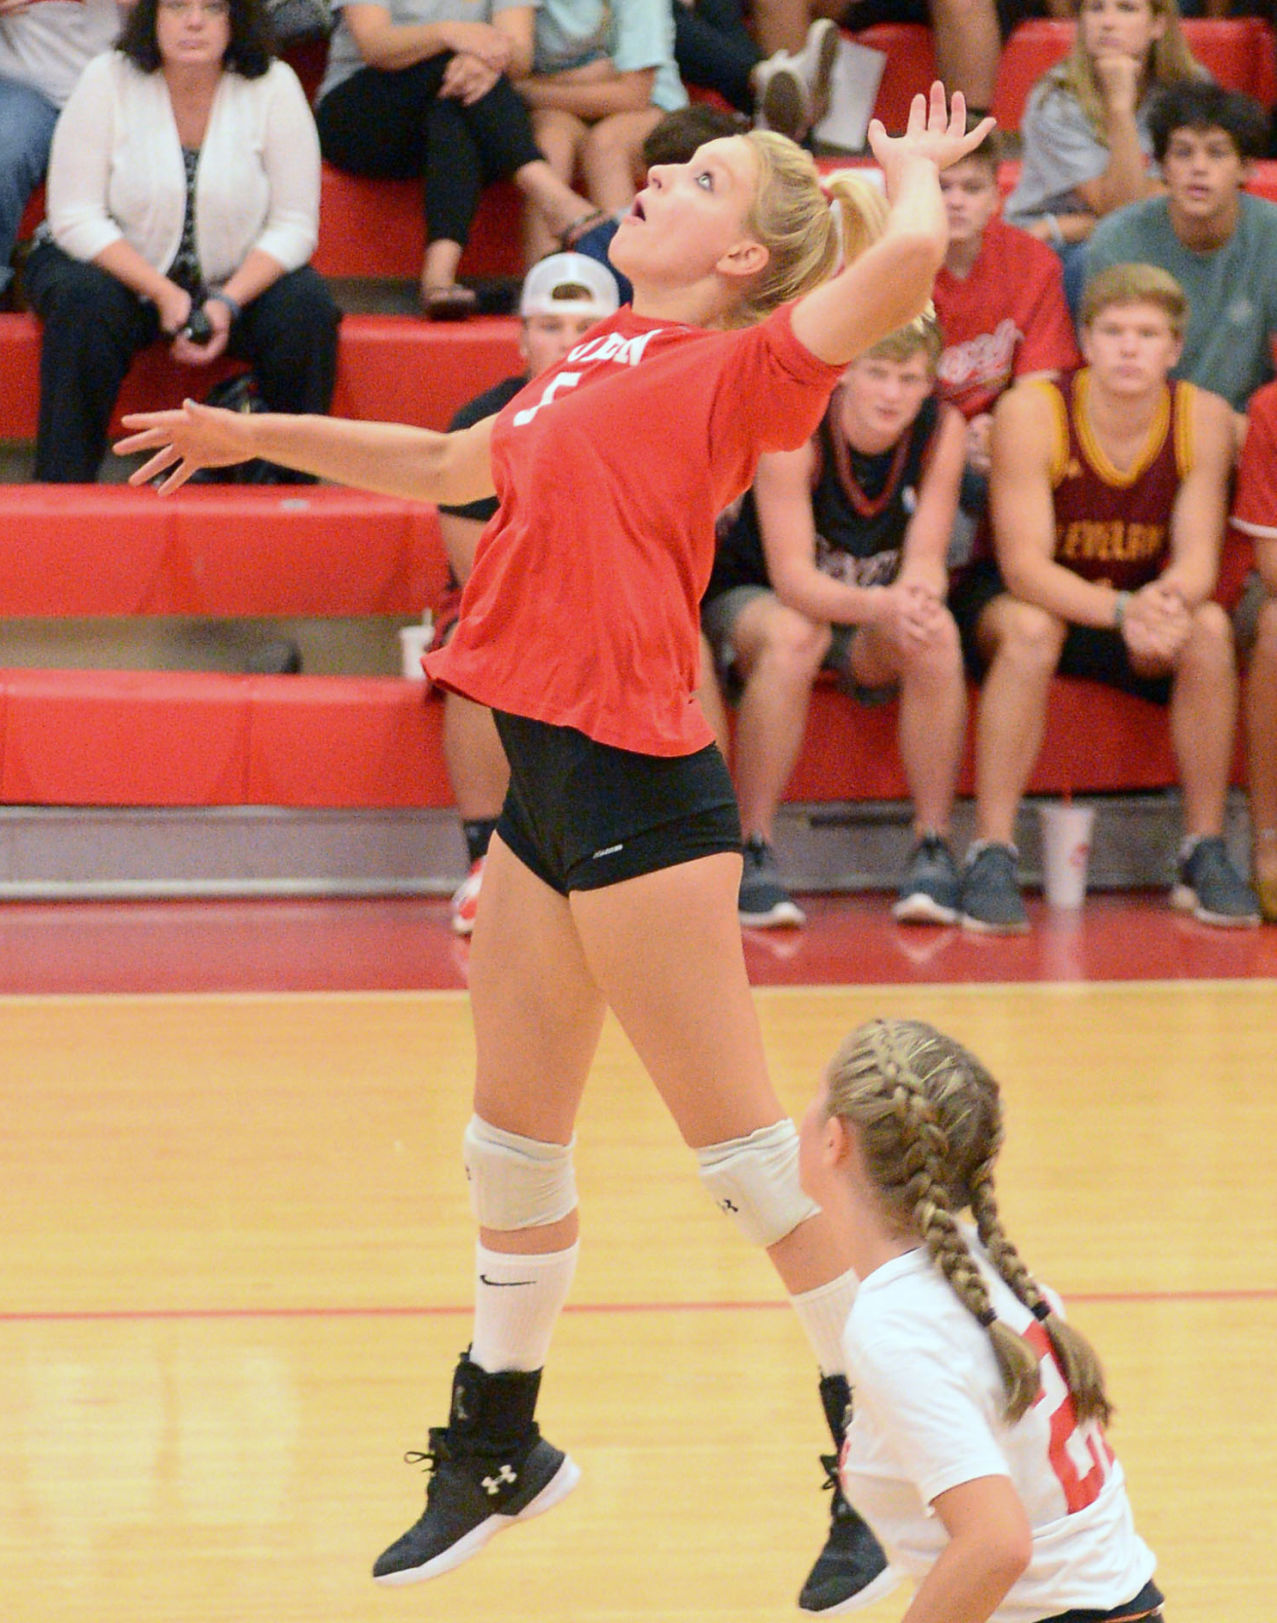 Volleyball teams at midway point